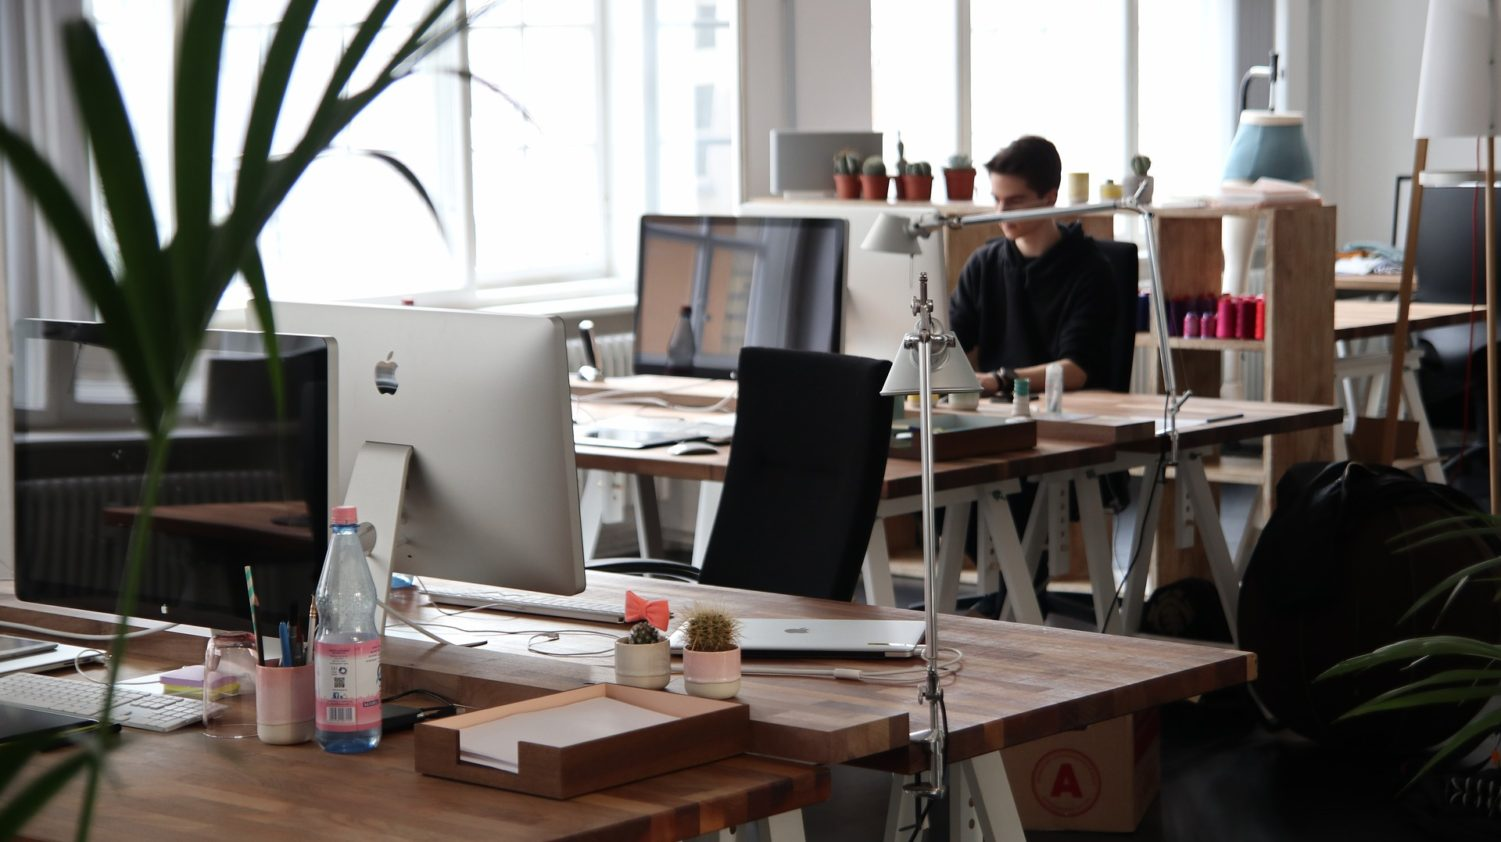 5. Divide your desk into zones that could help you Declutter your office lots